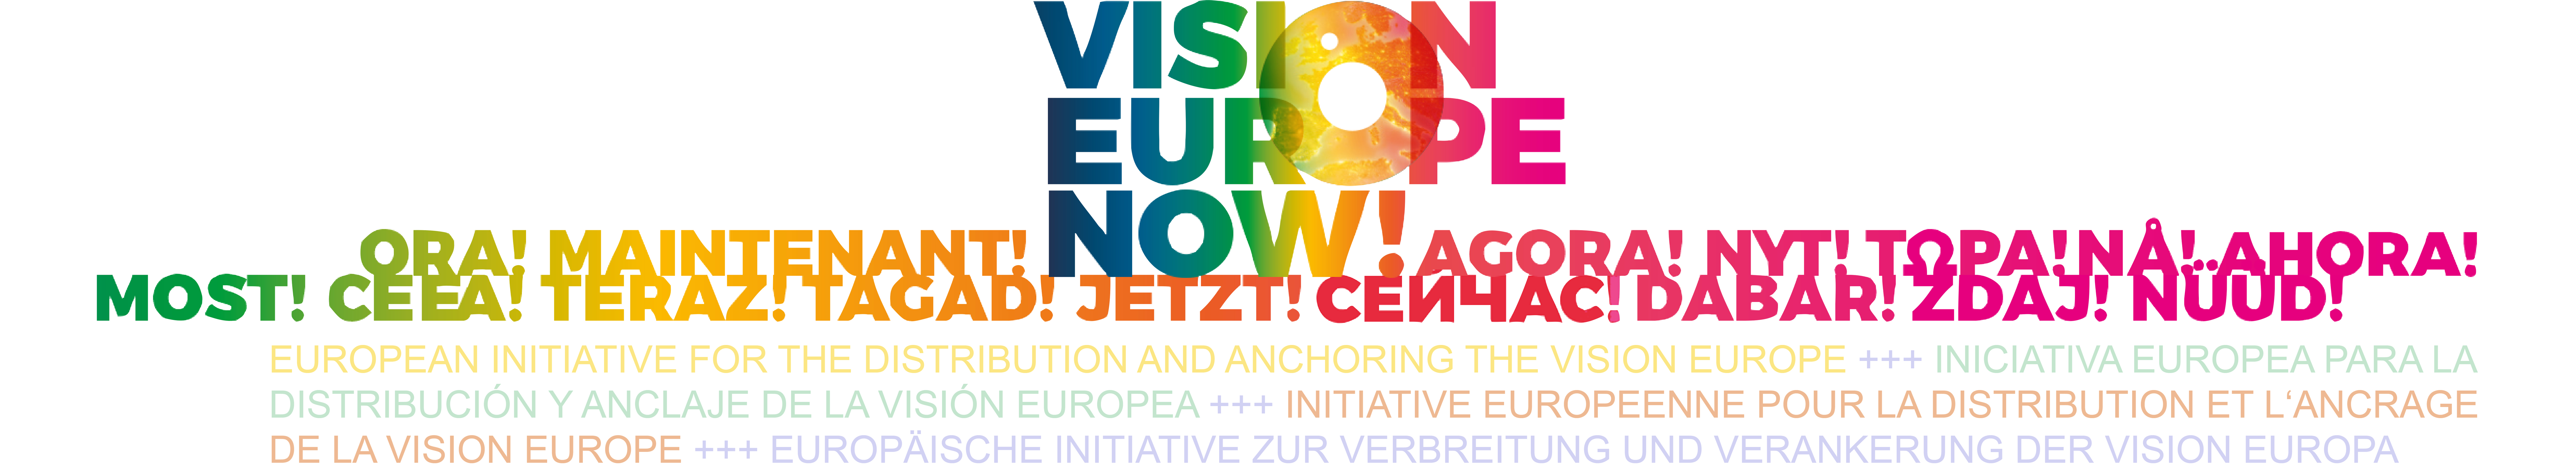 Logo Vision Europe Now